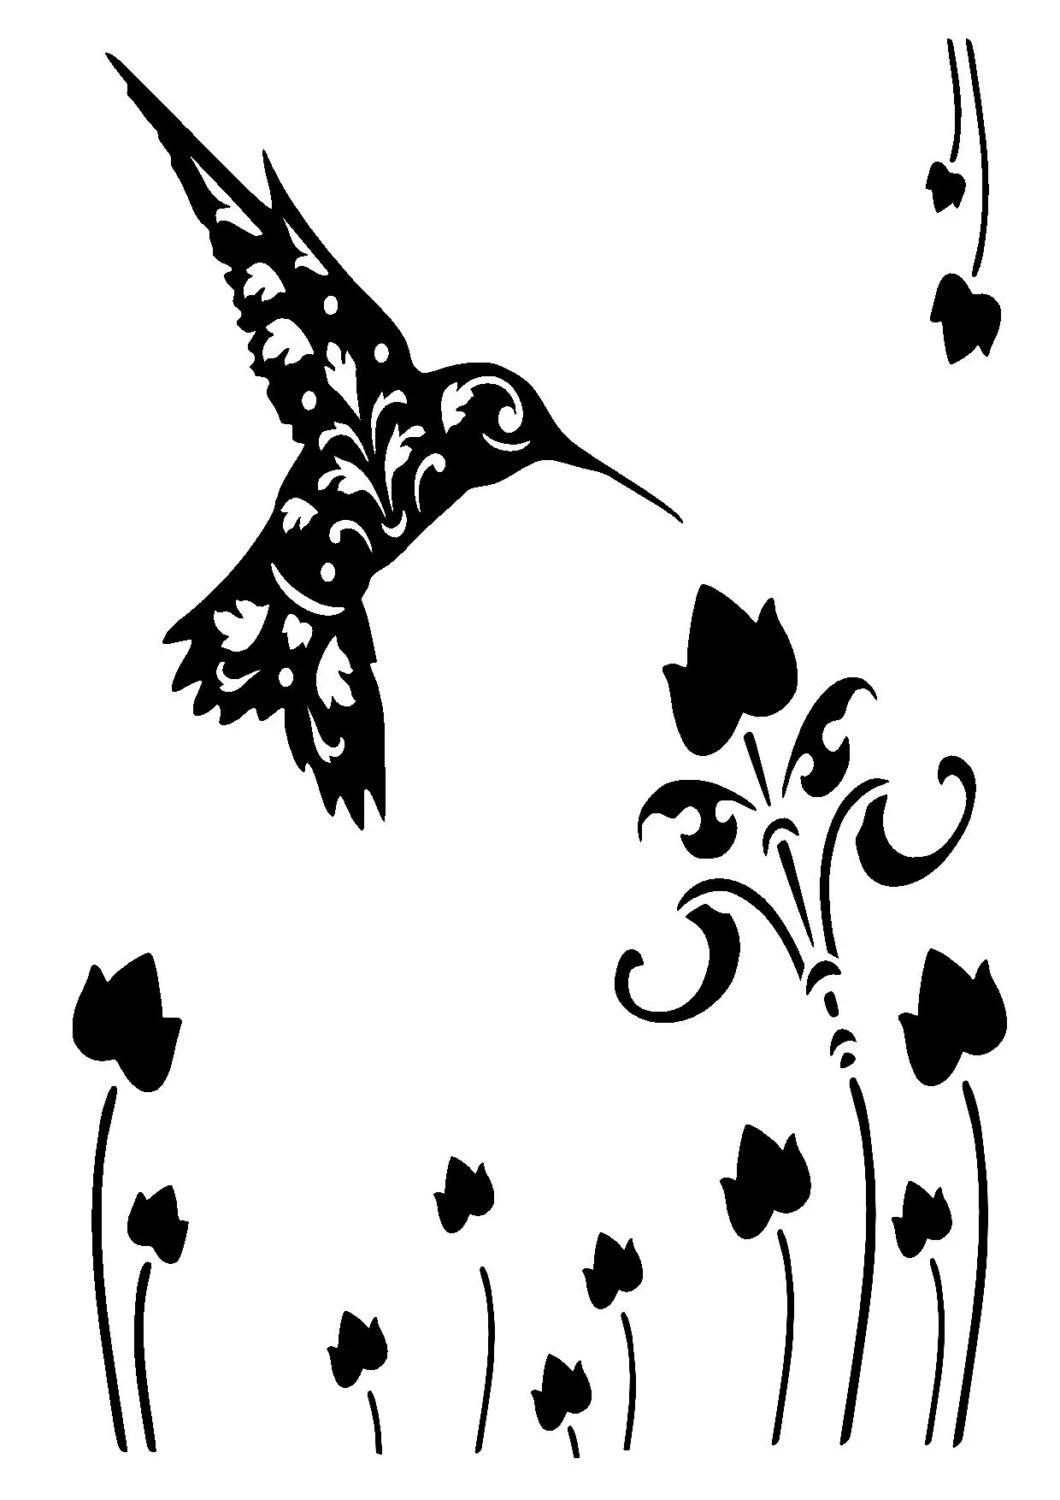 5 8 8 3 Vintage Hummingbird Stencil And Template A5